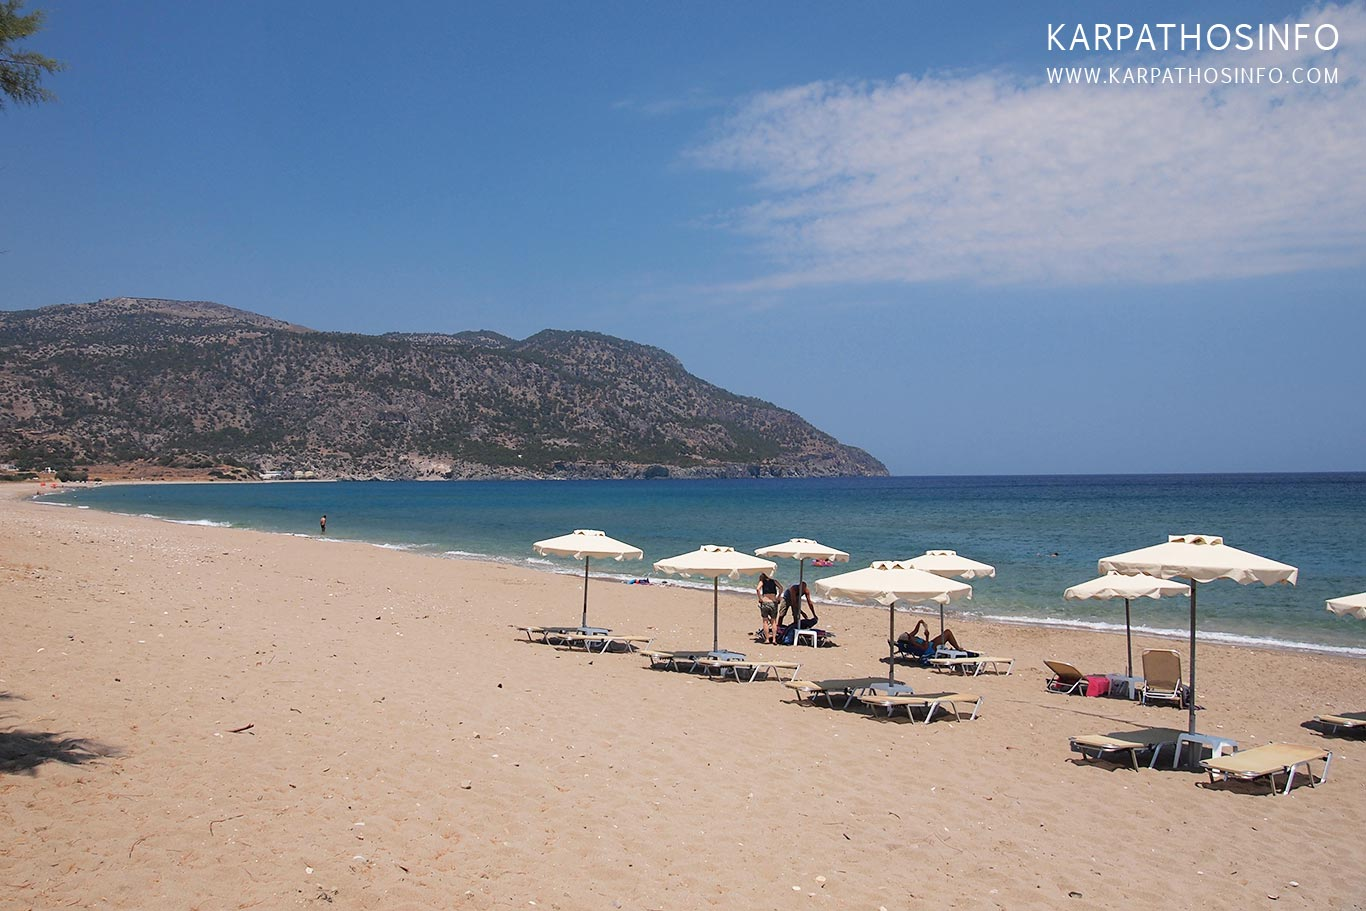 Vrontis beach near Pigadia